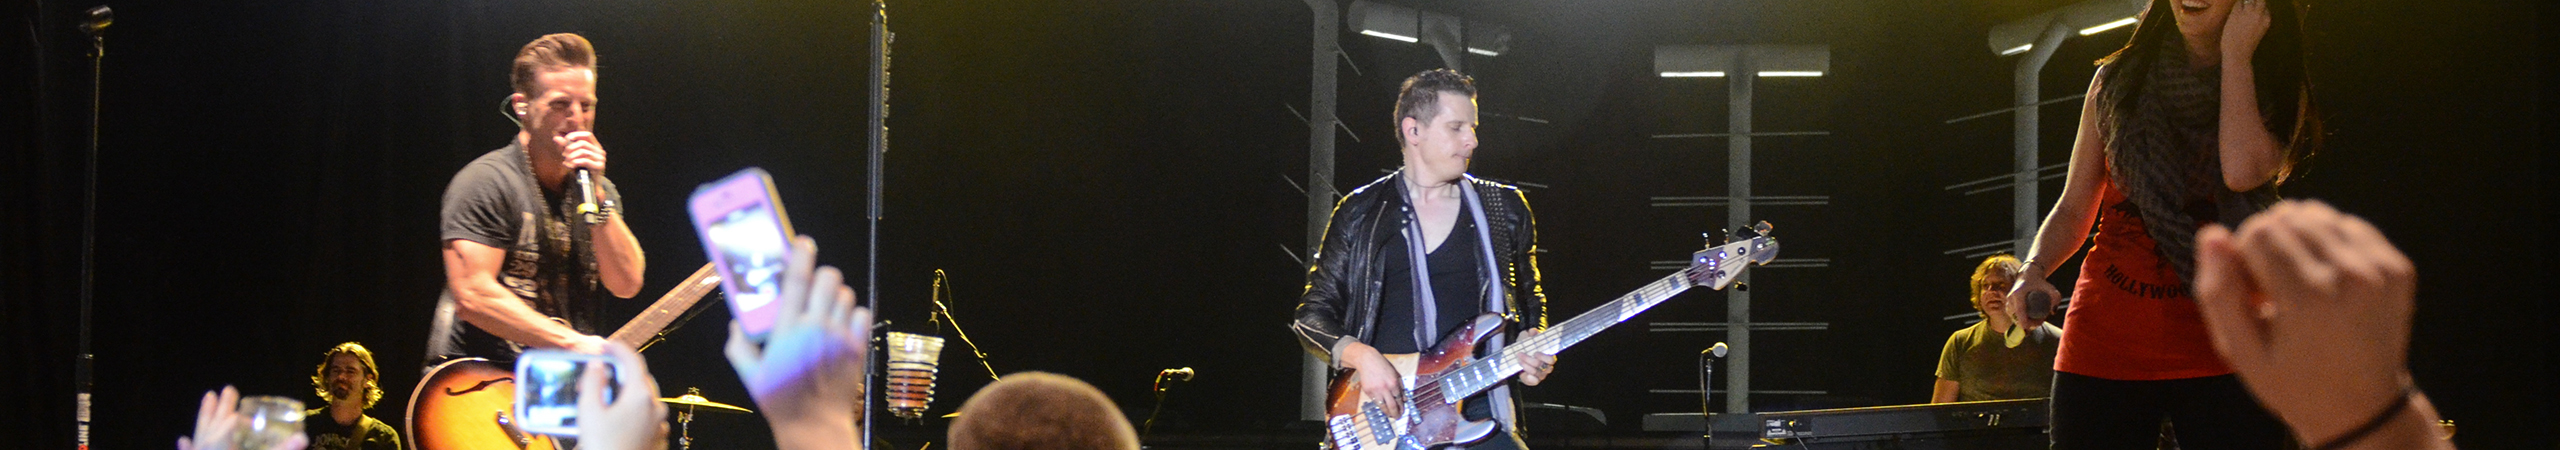 Thompson Square Concert at the Great Jacksonville Fair